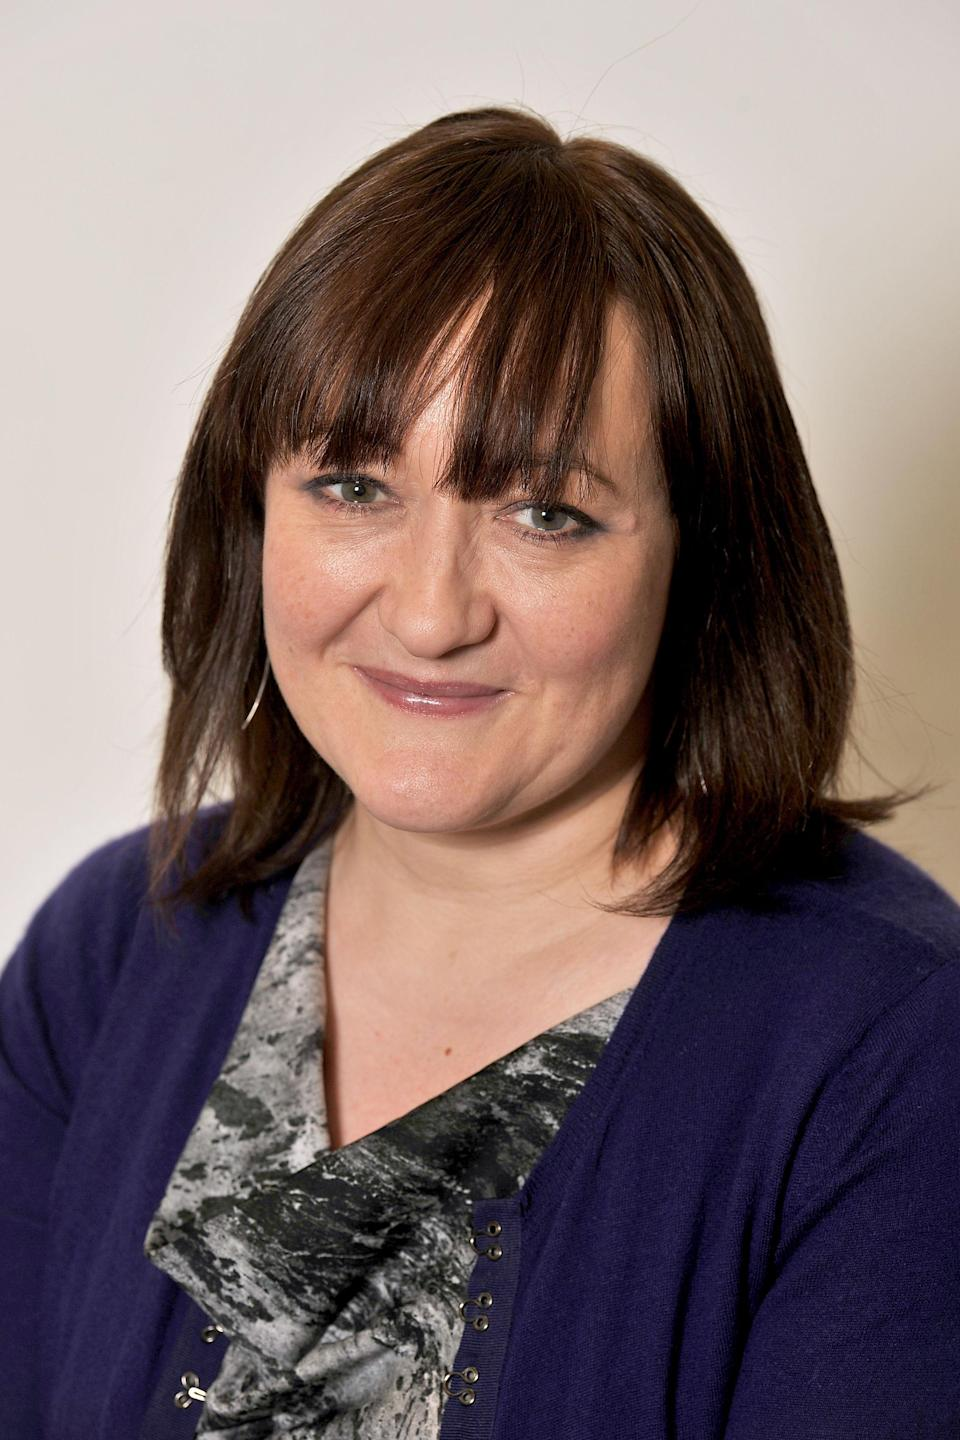 <em>Praise – female Labour MPs have praised Kerry McCarthy for speaking out about unwanted attention she received from Kelvin Hopkins over 20 years</em>